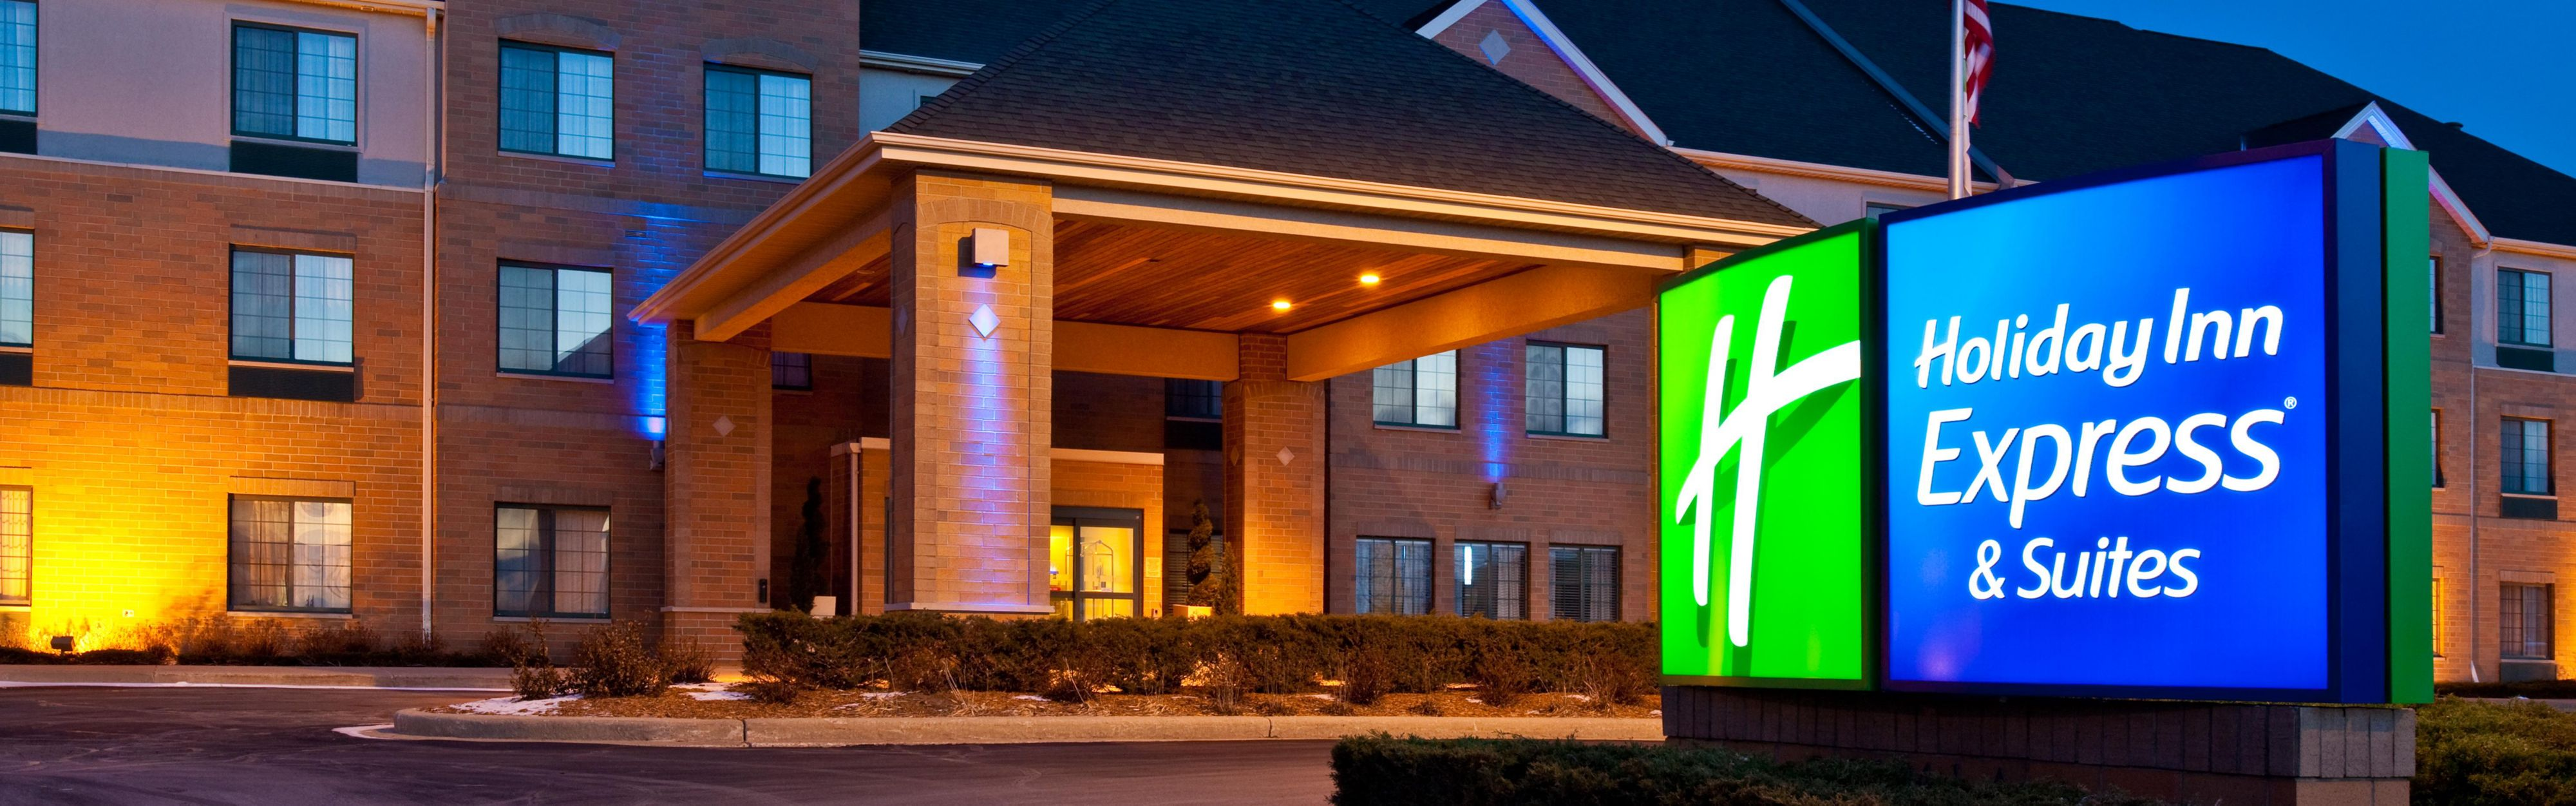 Holiday Inn Express frequently offers bonus points or miles for Priority Club rewards members and special offers for extended vacation stays. There are great discounts for .